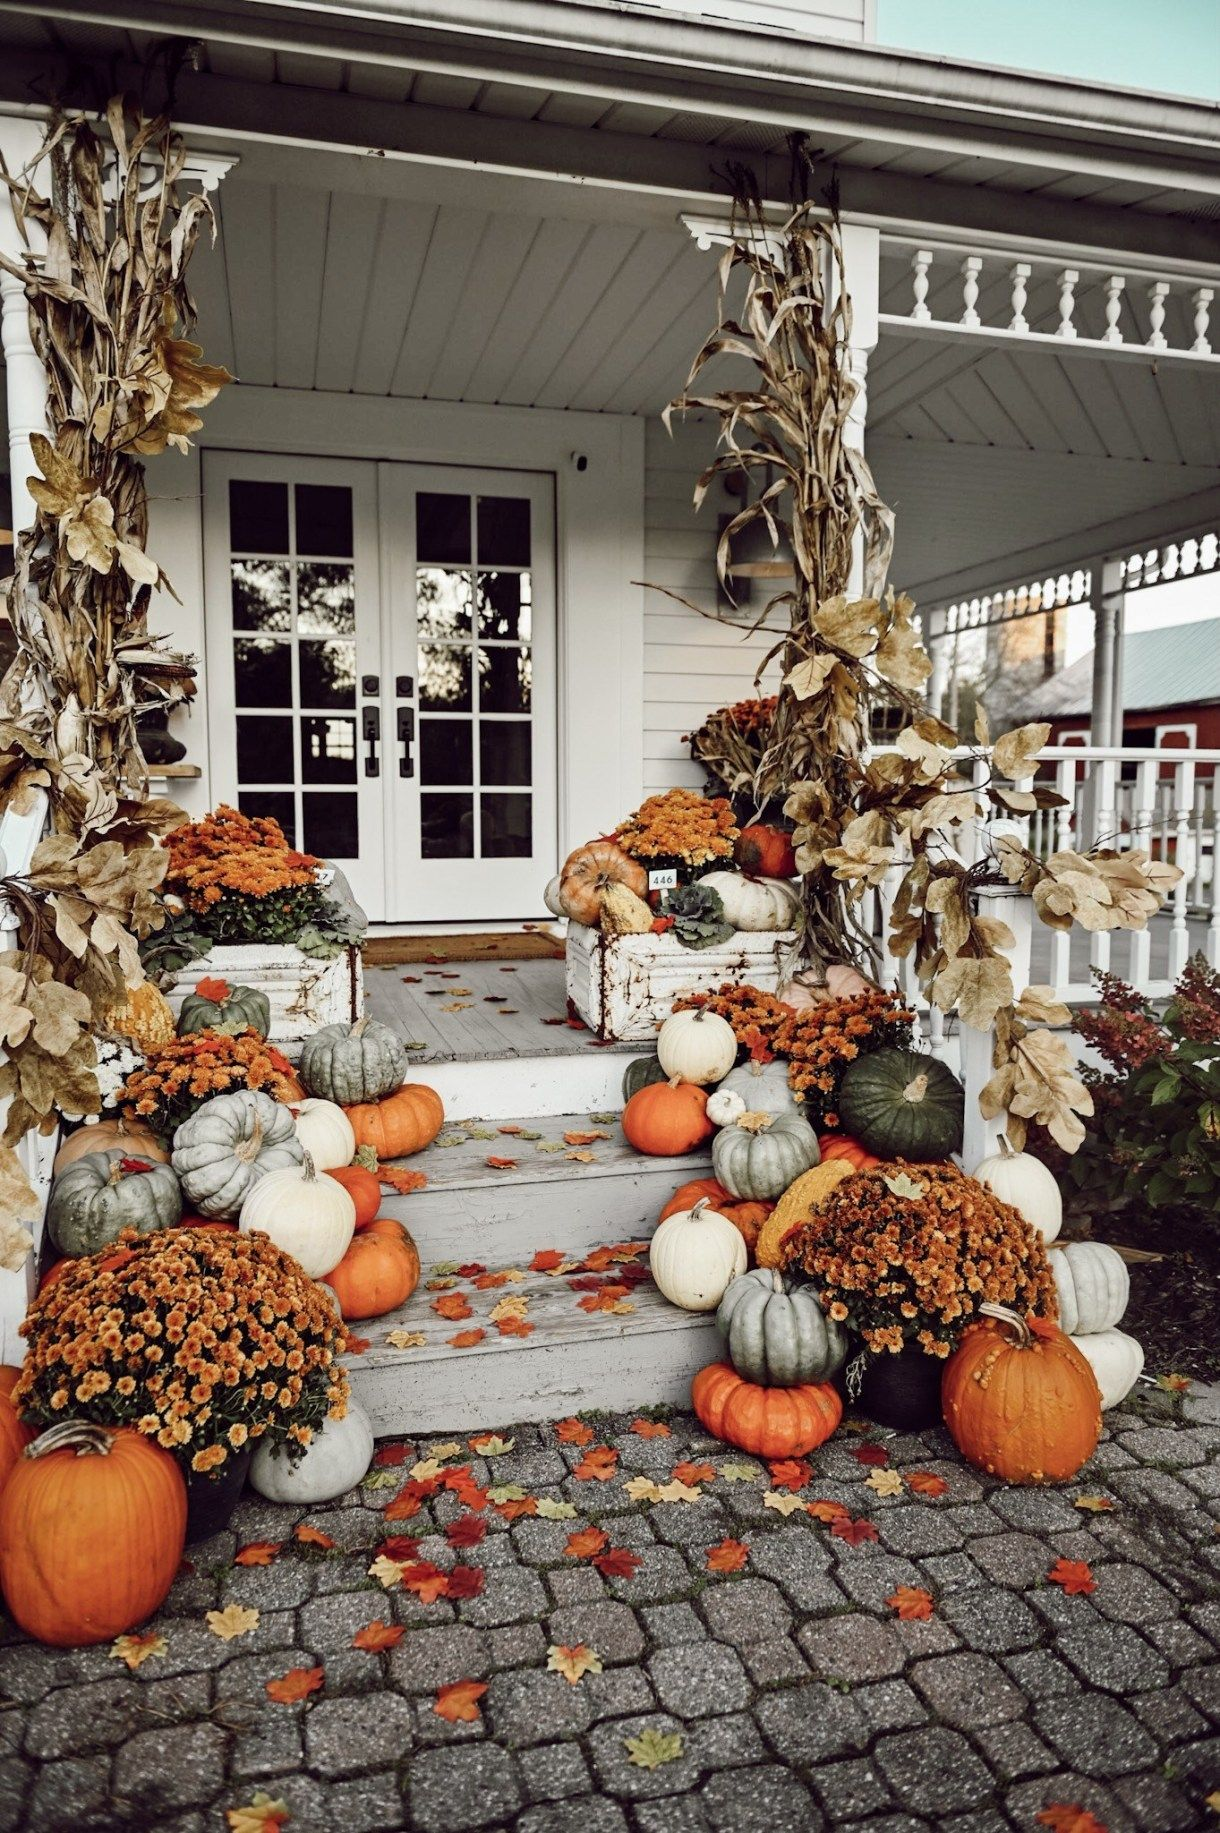 45+ Beautiful Fall Porch Ideas That You Will Love